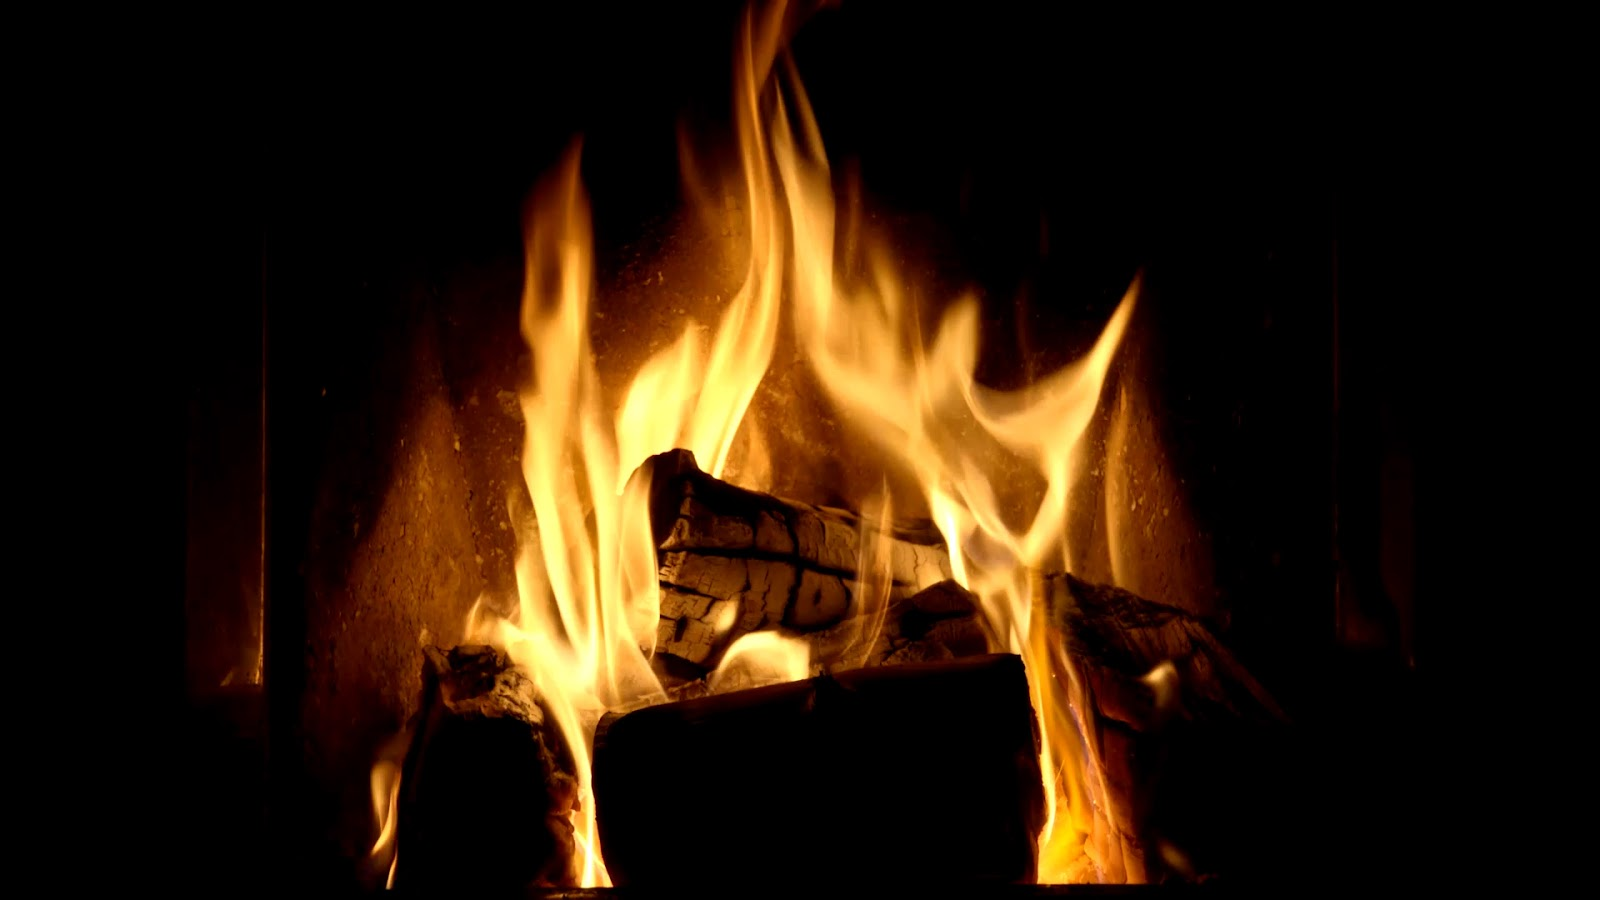 Fireplace Desktop Background Full Hd 1920 X 1080 Resolution